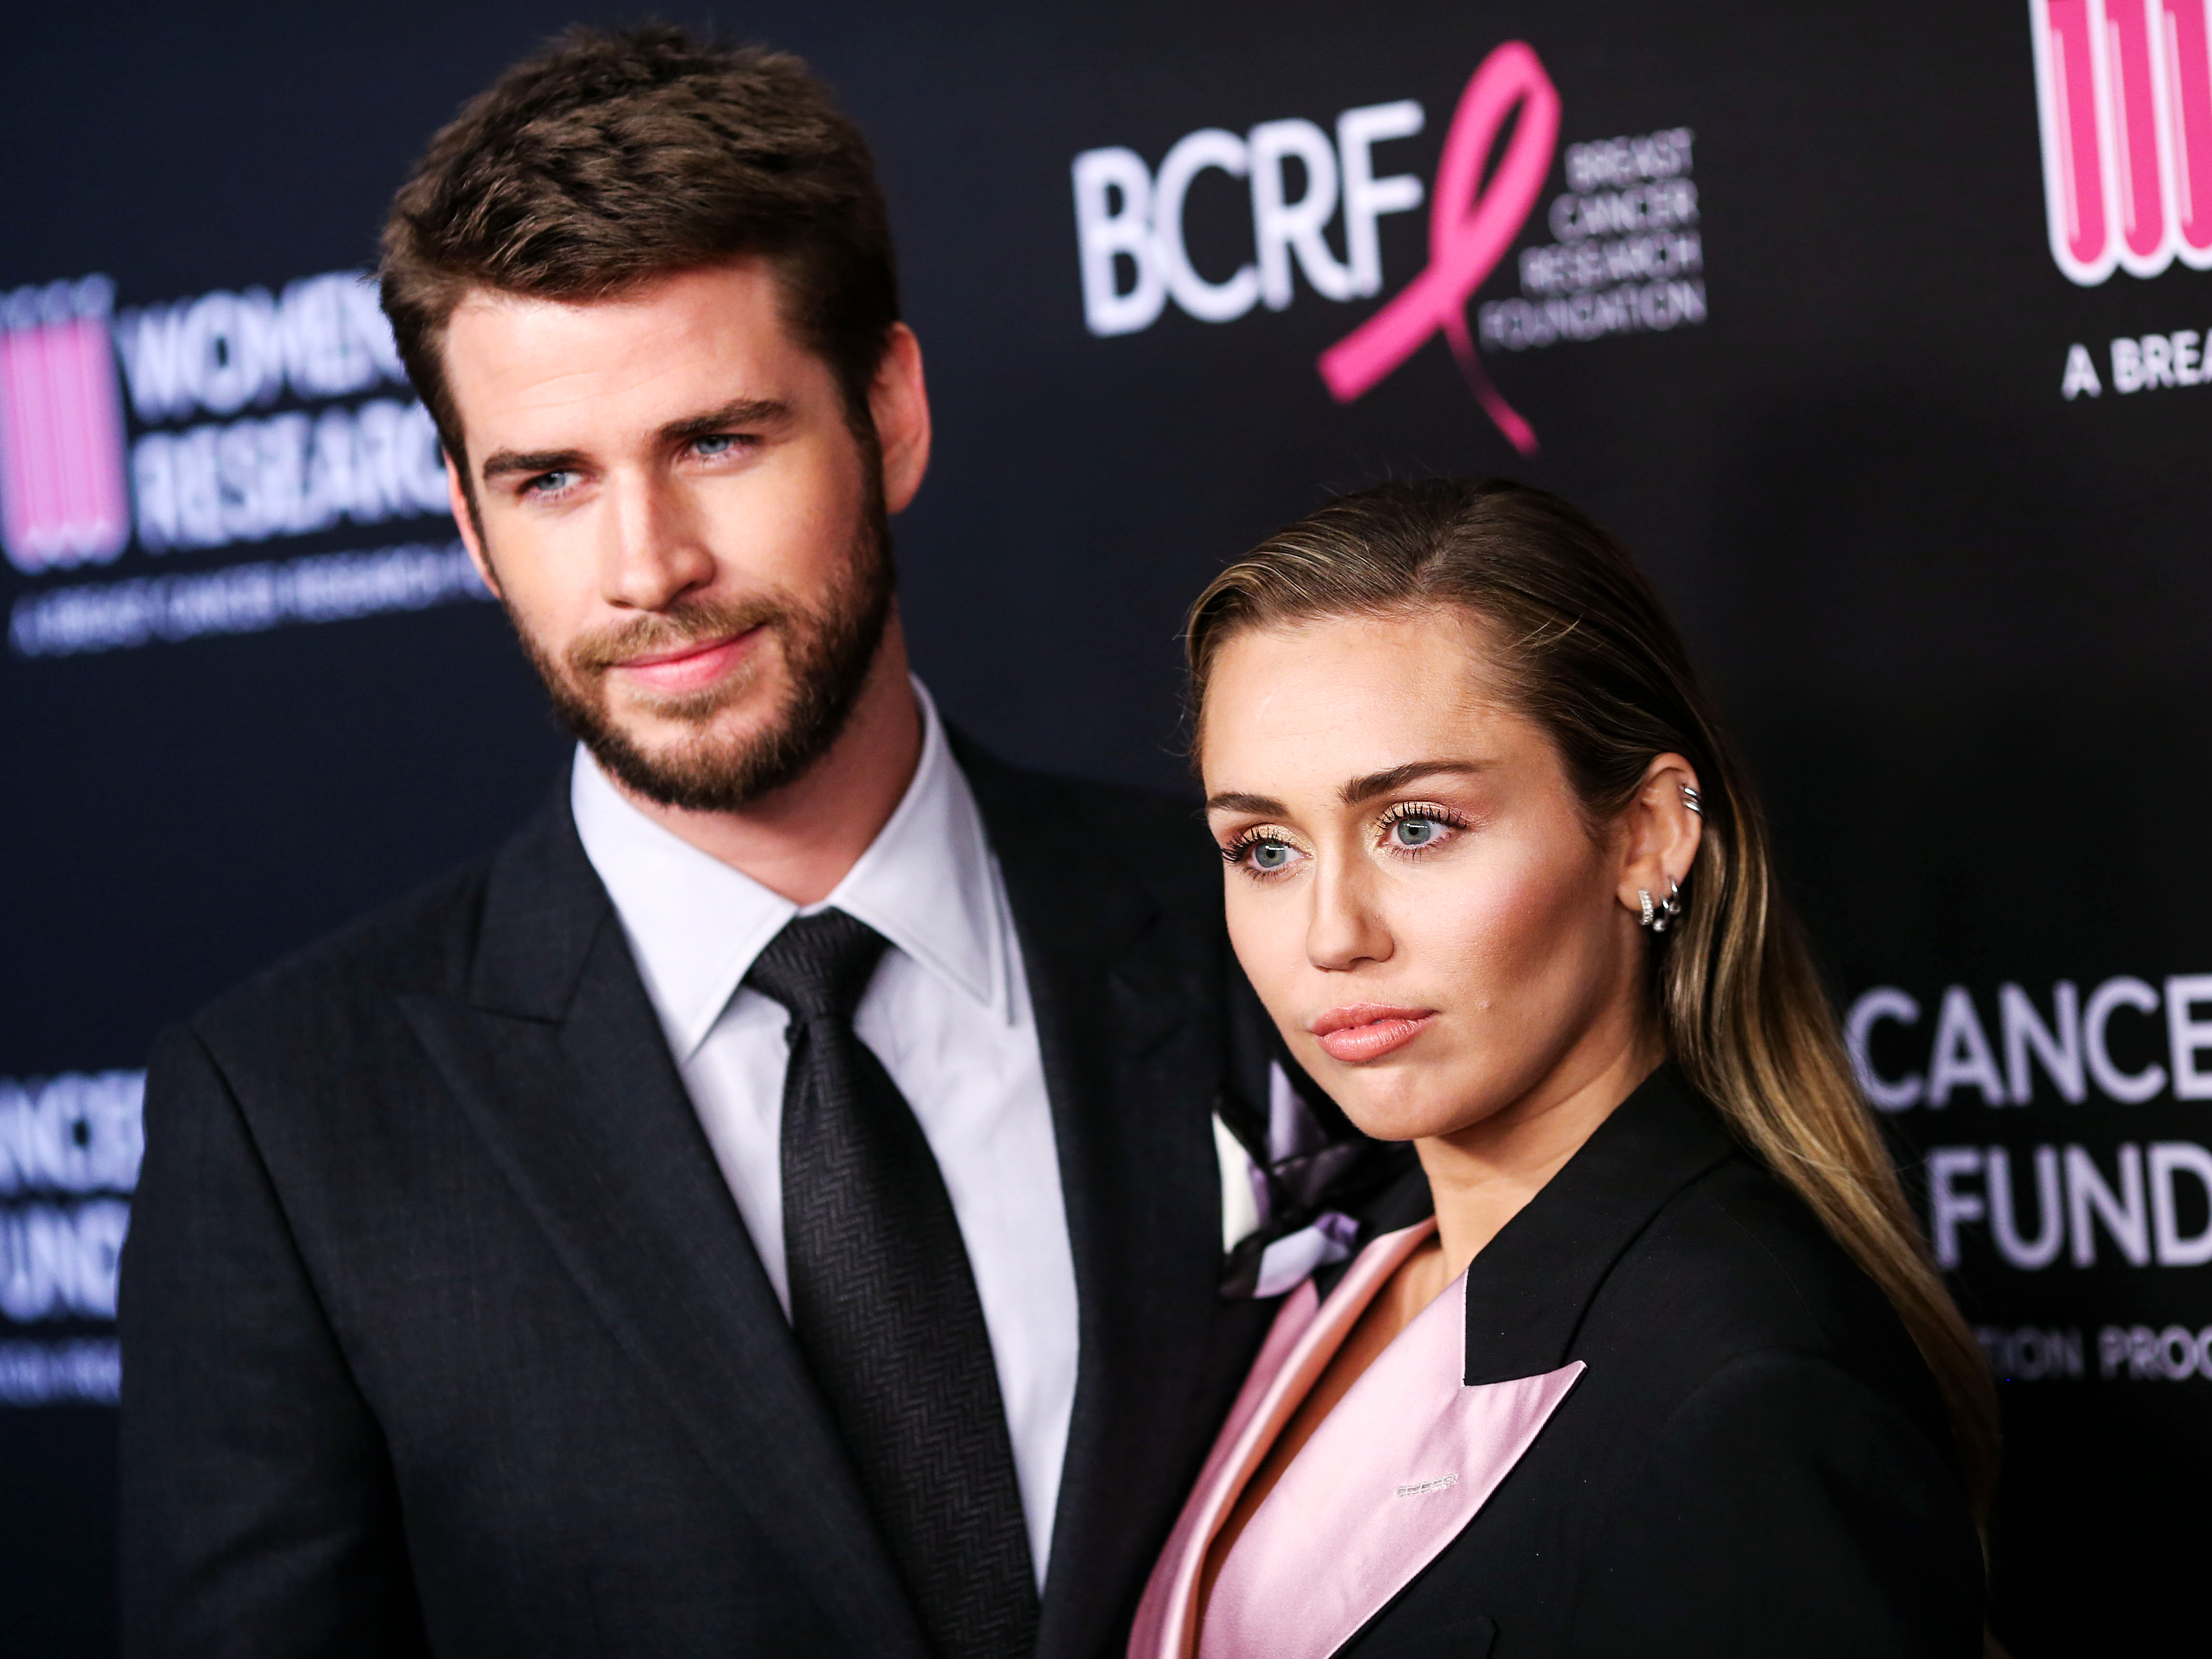 Miley Cyrus Files For Divorce From Liam Hemsworth